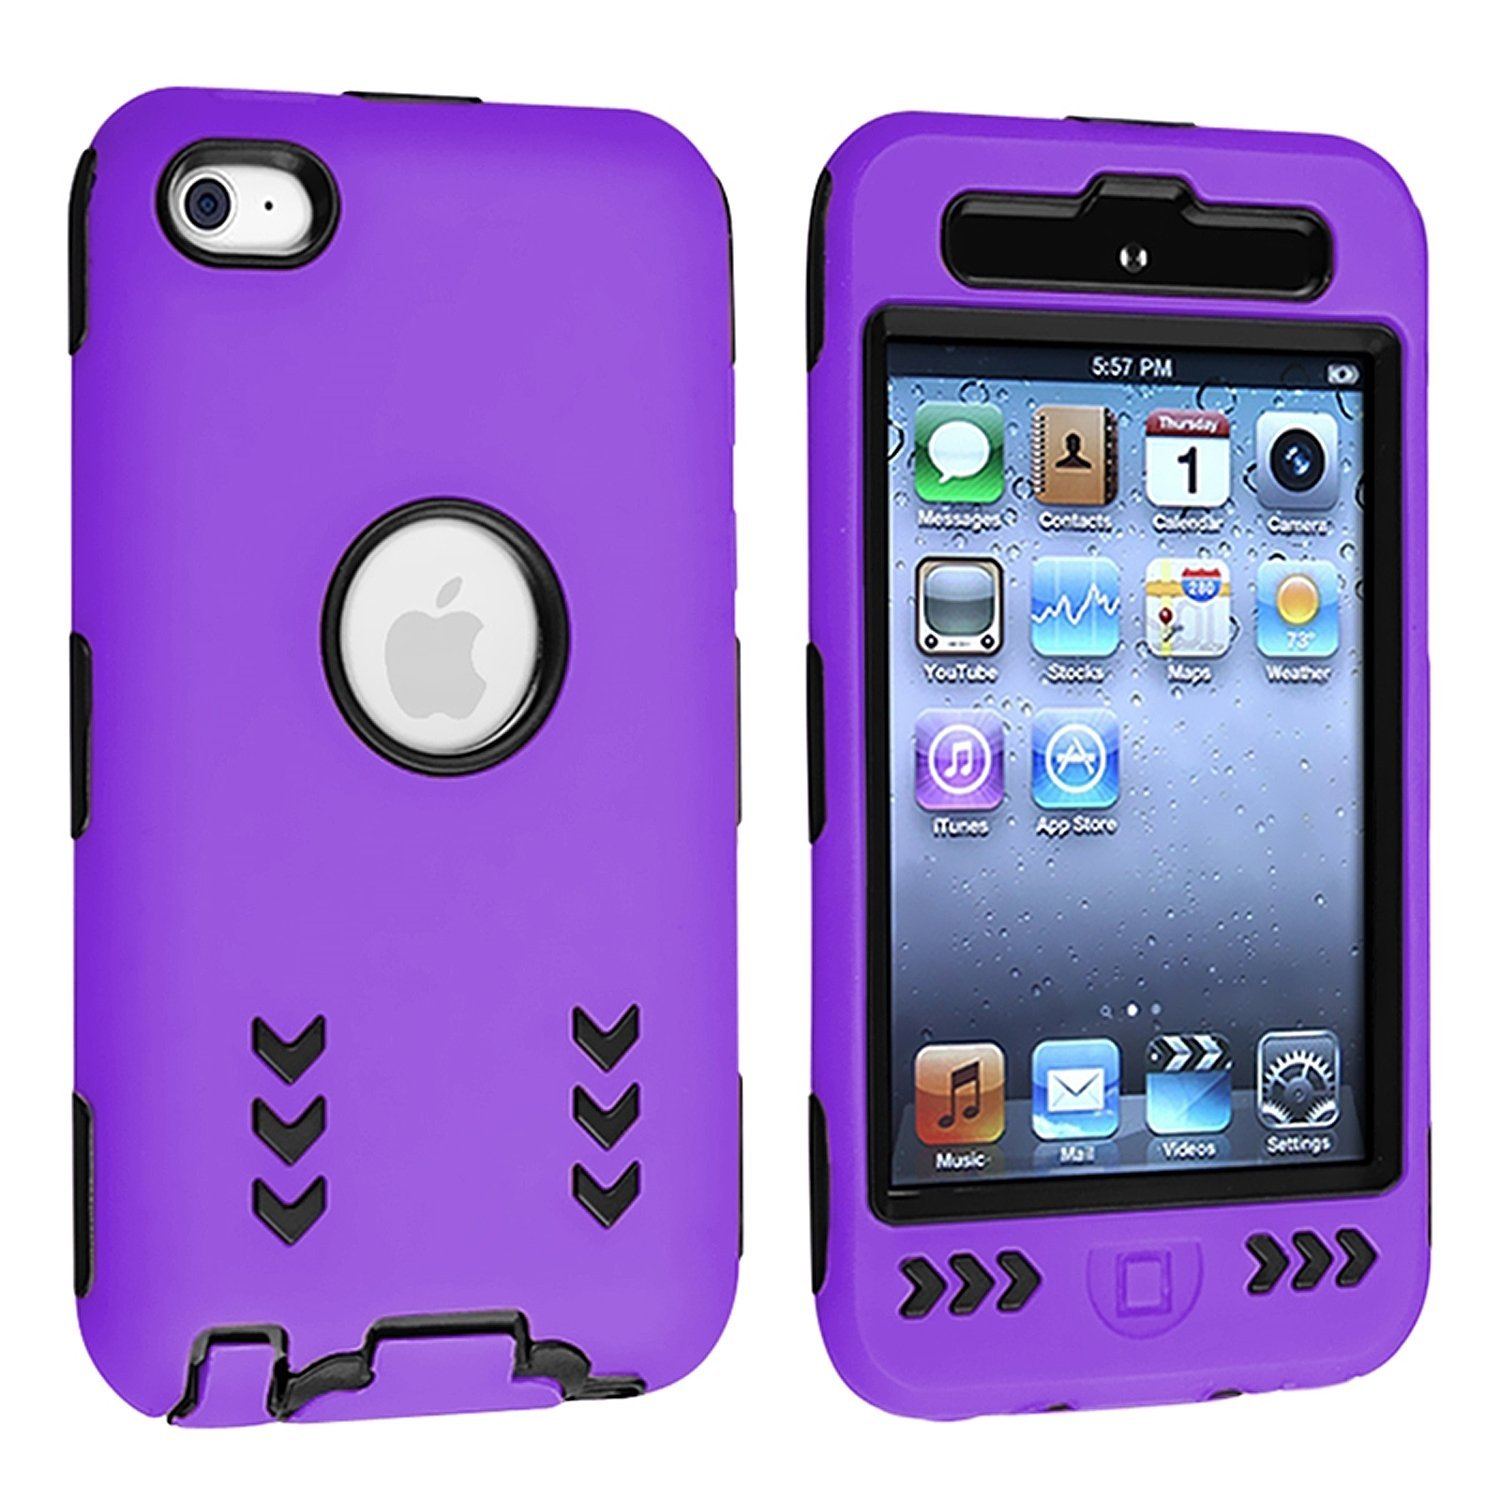 Arrow Hybrid Case for iPod Touch 4th Gen - Black/Purple